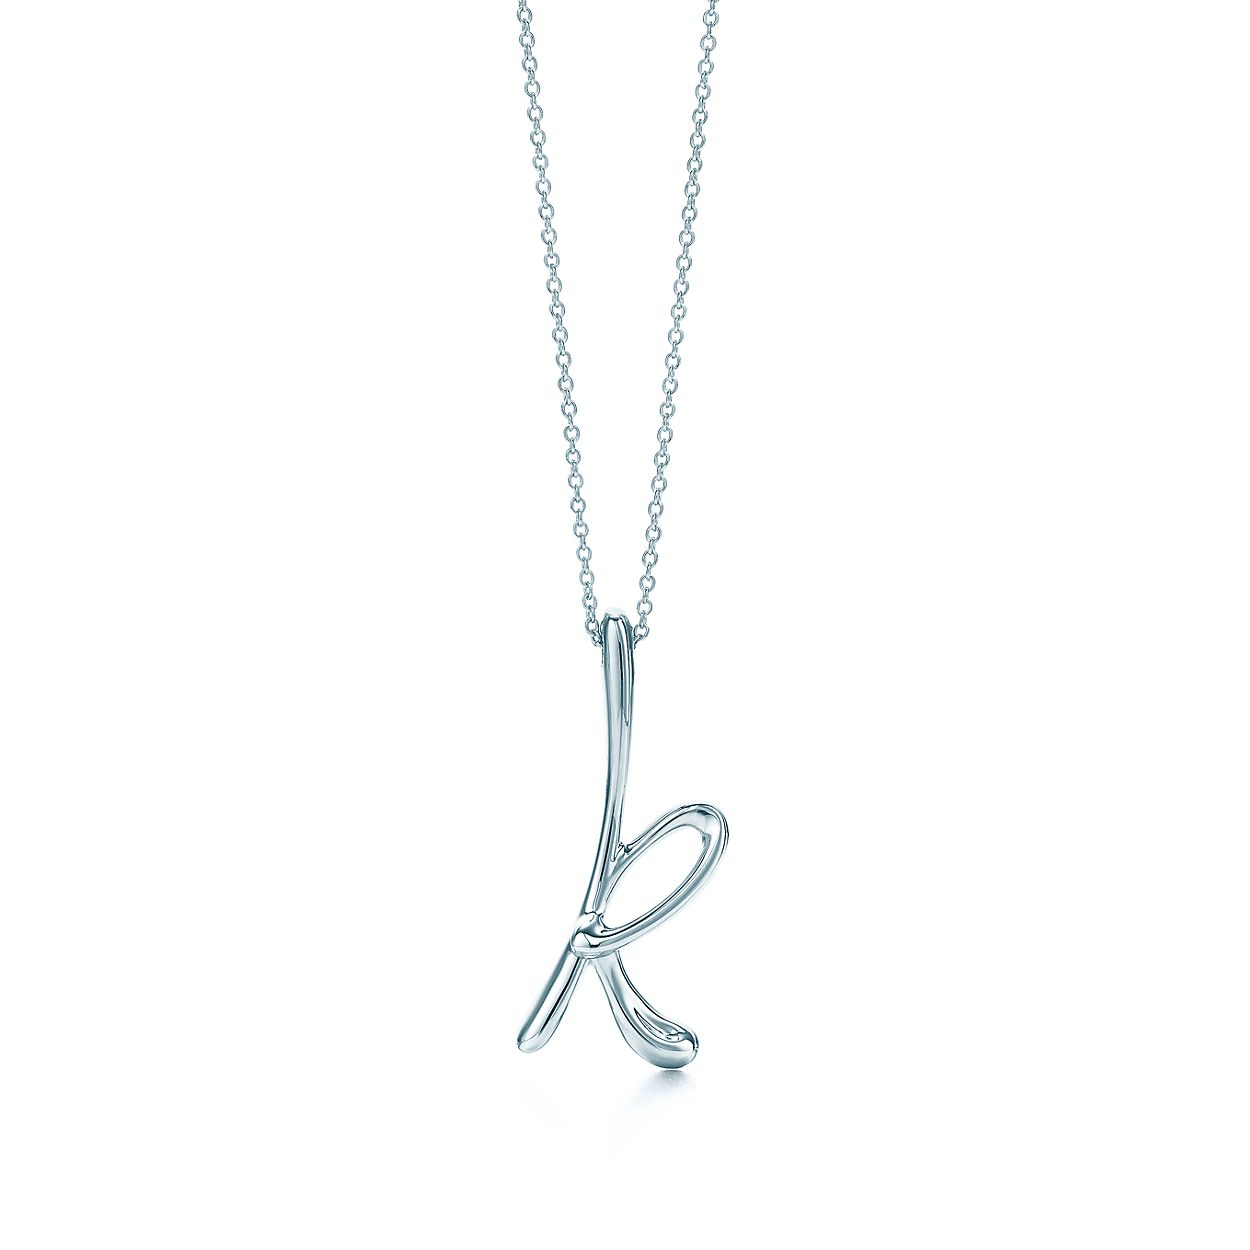 Tiffany alphabet necklace silver necklace wallpaper gallerychitrak tiffany co sterling silver letter a round pendant necklace 28676 tiffany initial necklace outlawdogsleds salada bowl rakuten global market tiffany co aloadofball Images